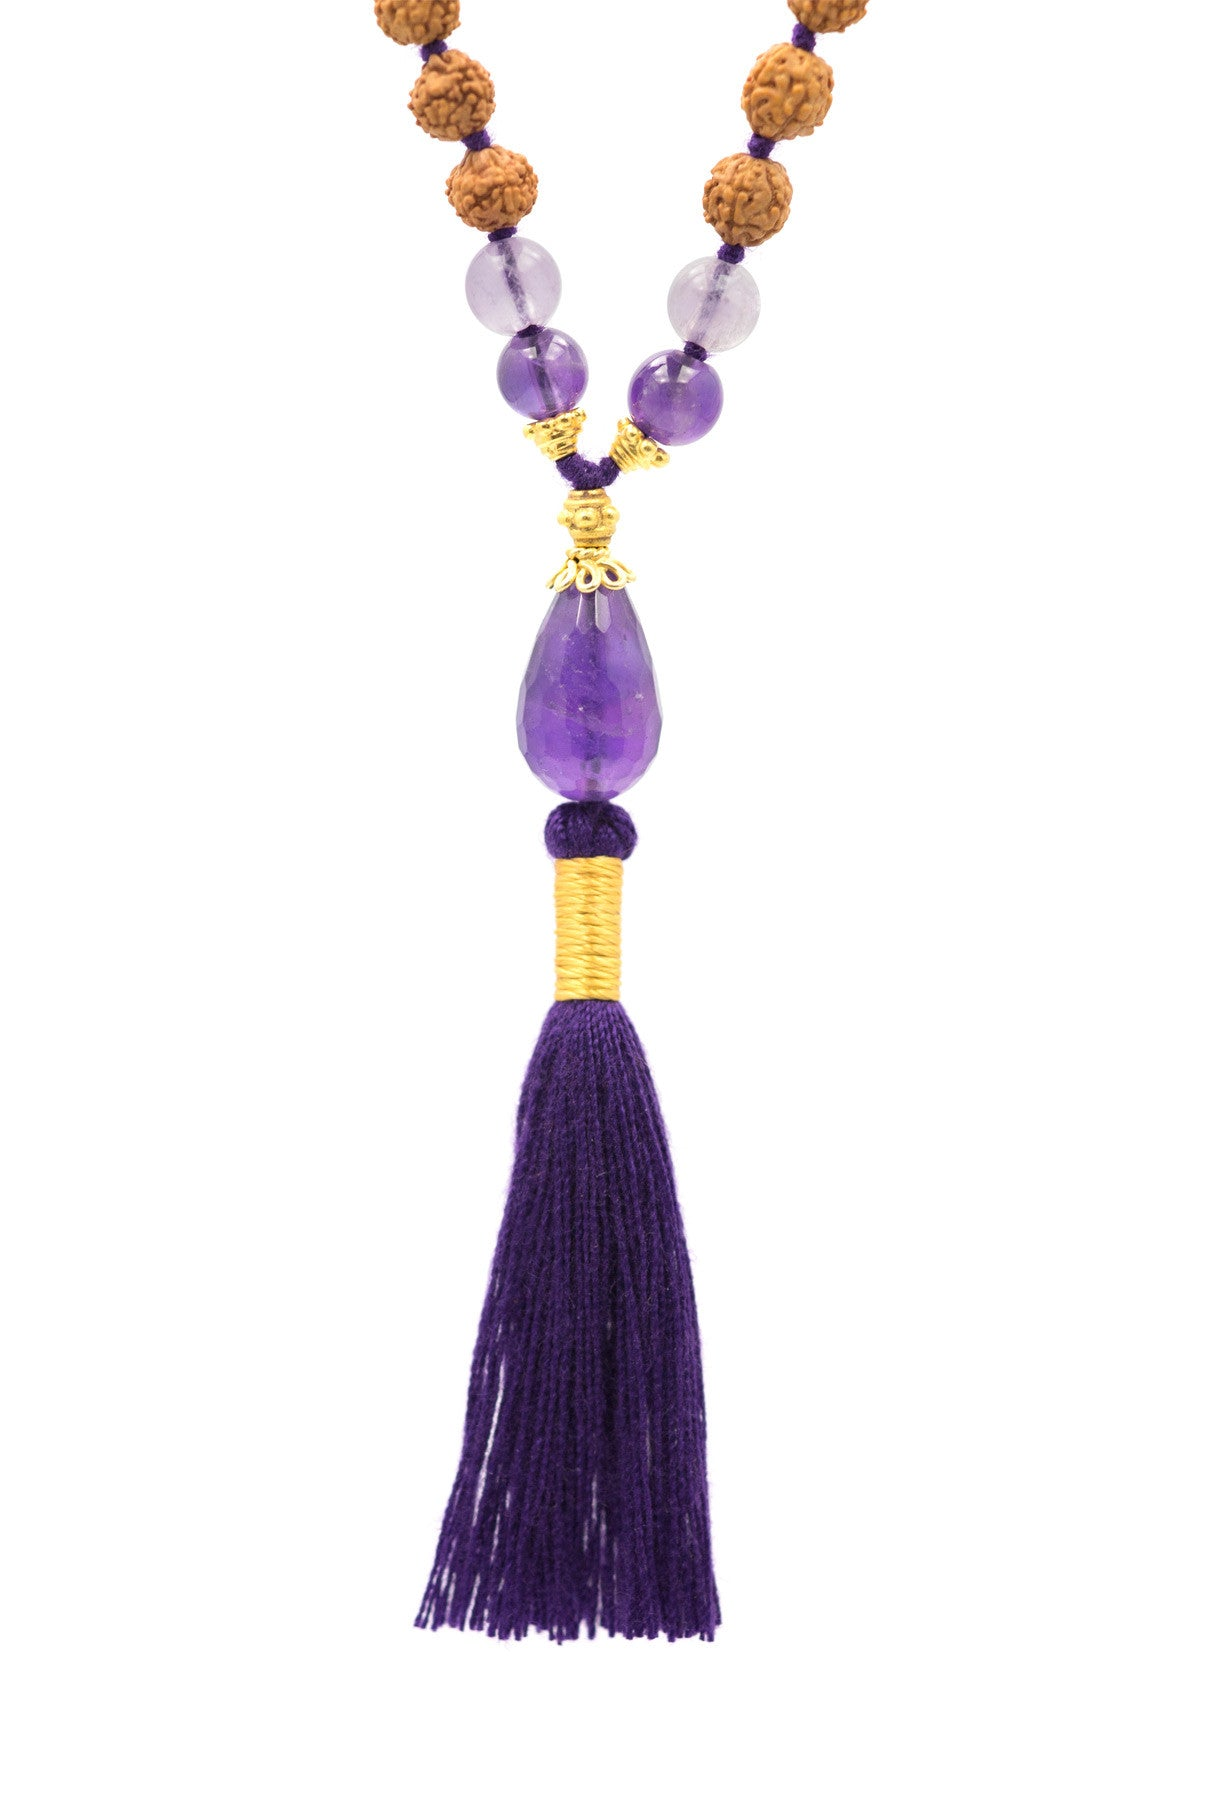 The Third Eye Chakra Mala